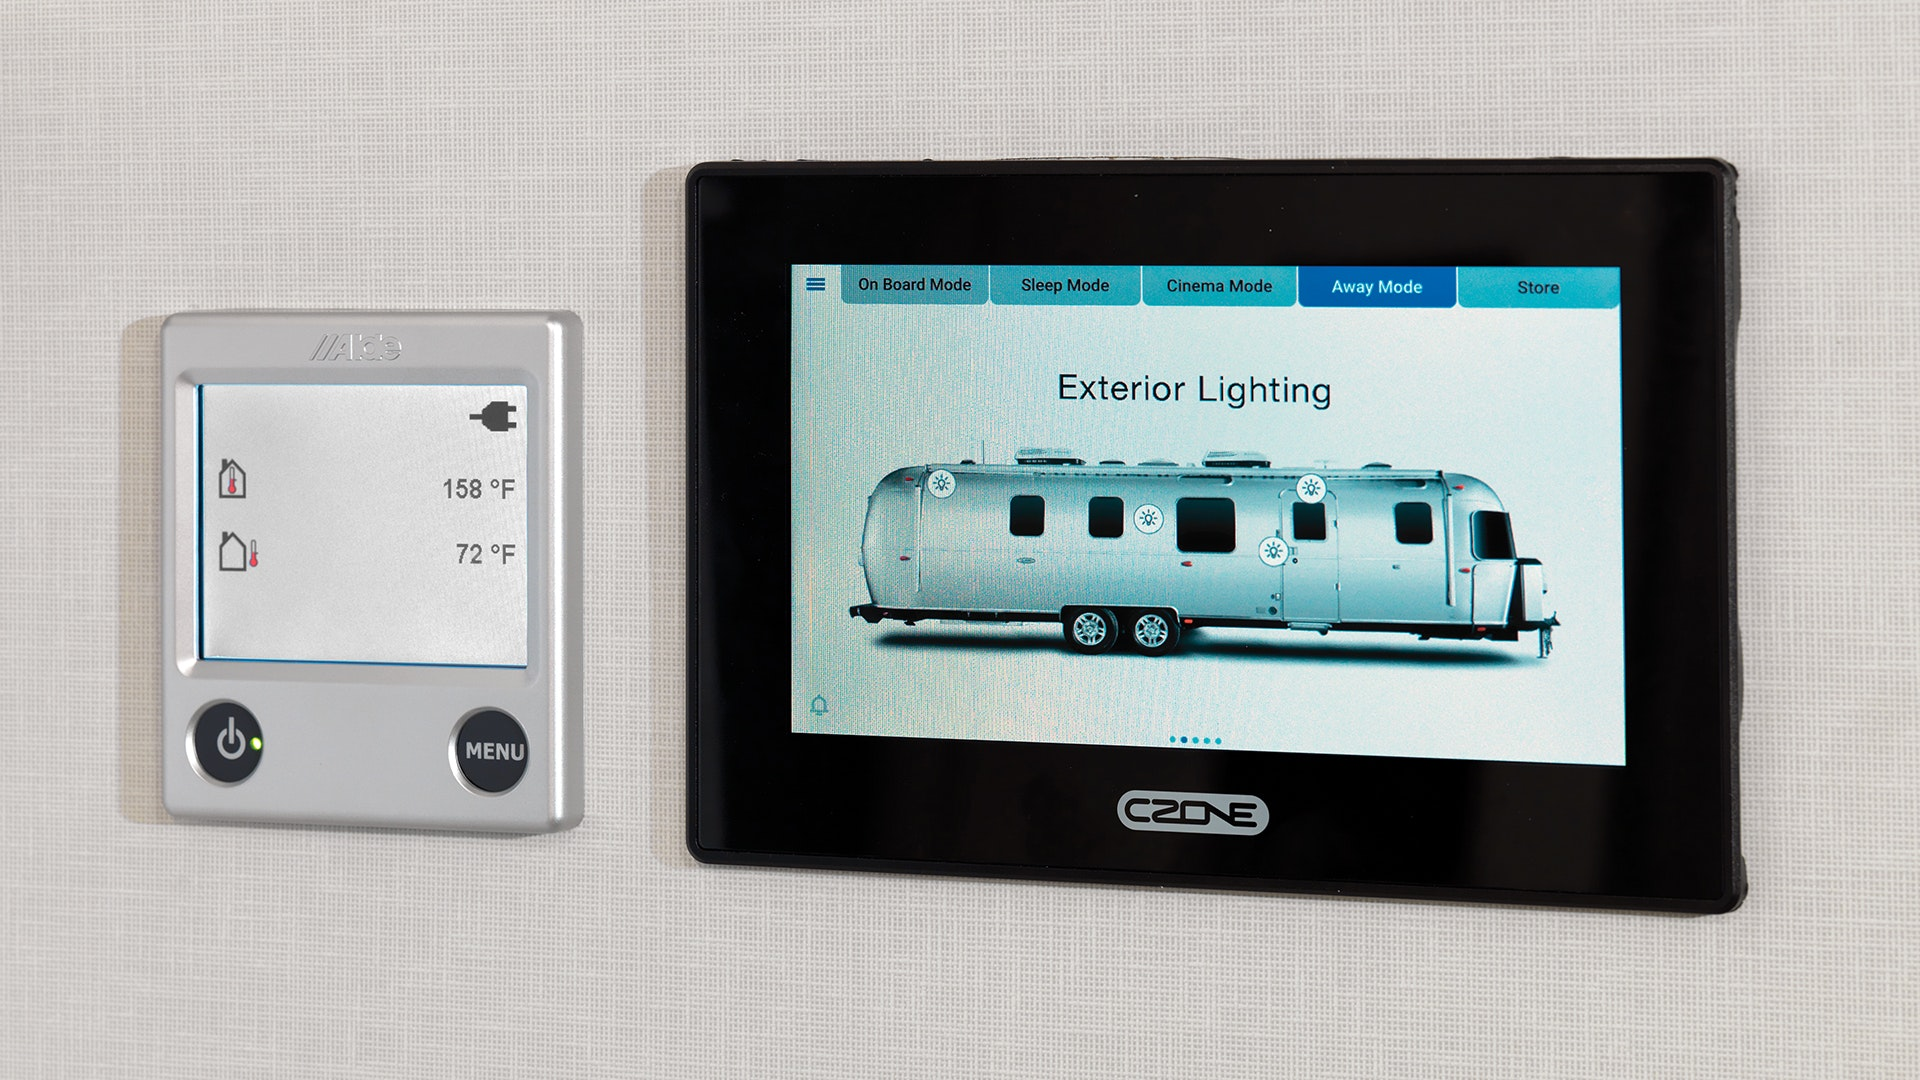 Airstream-Classic-Smart-Control-Technology-cZone-Panel-Exterior-Light-Control